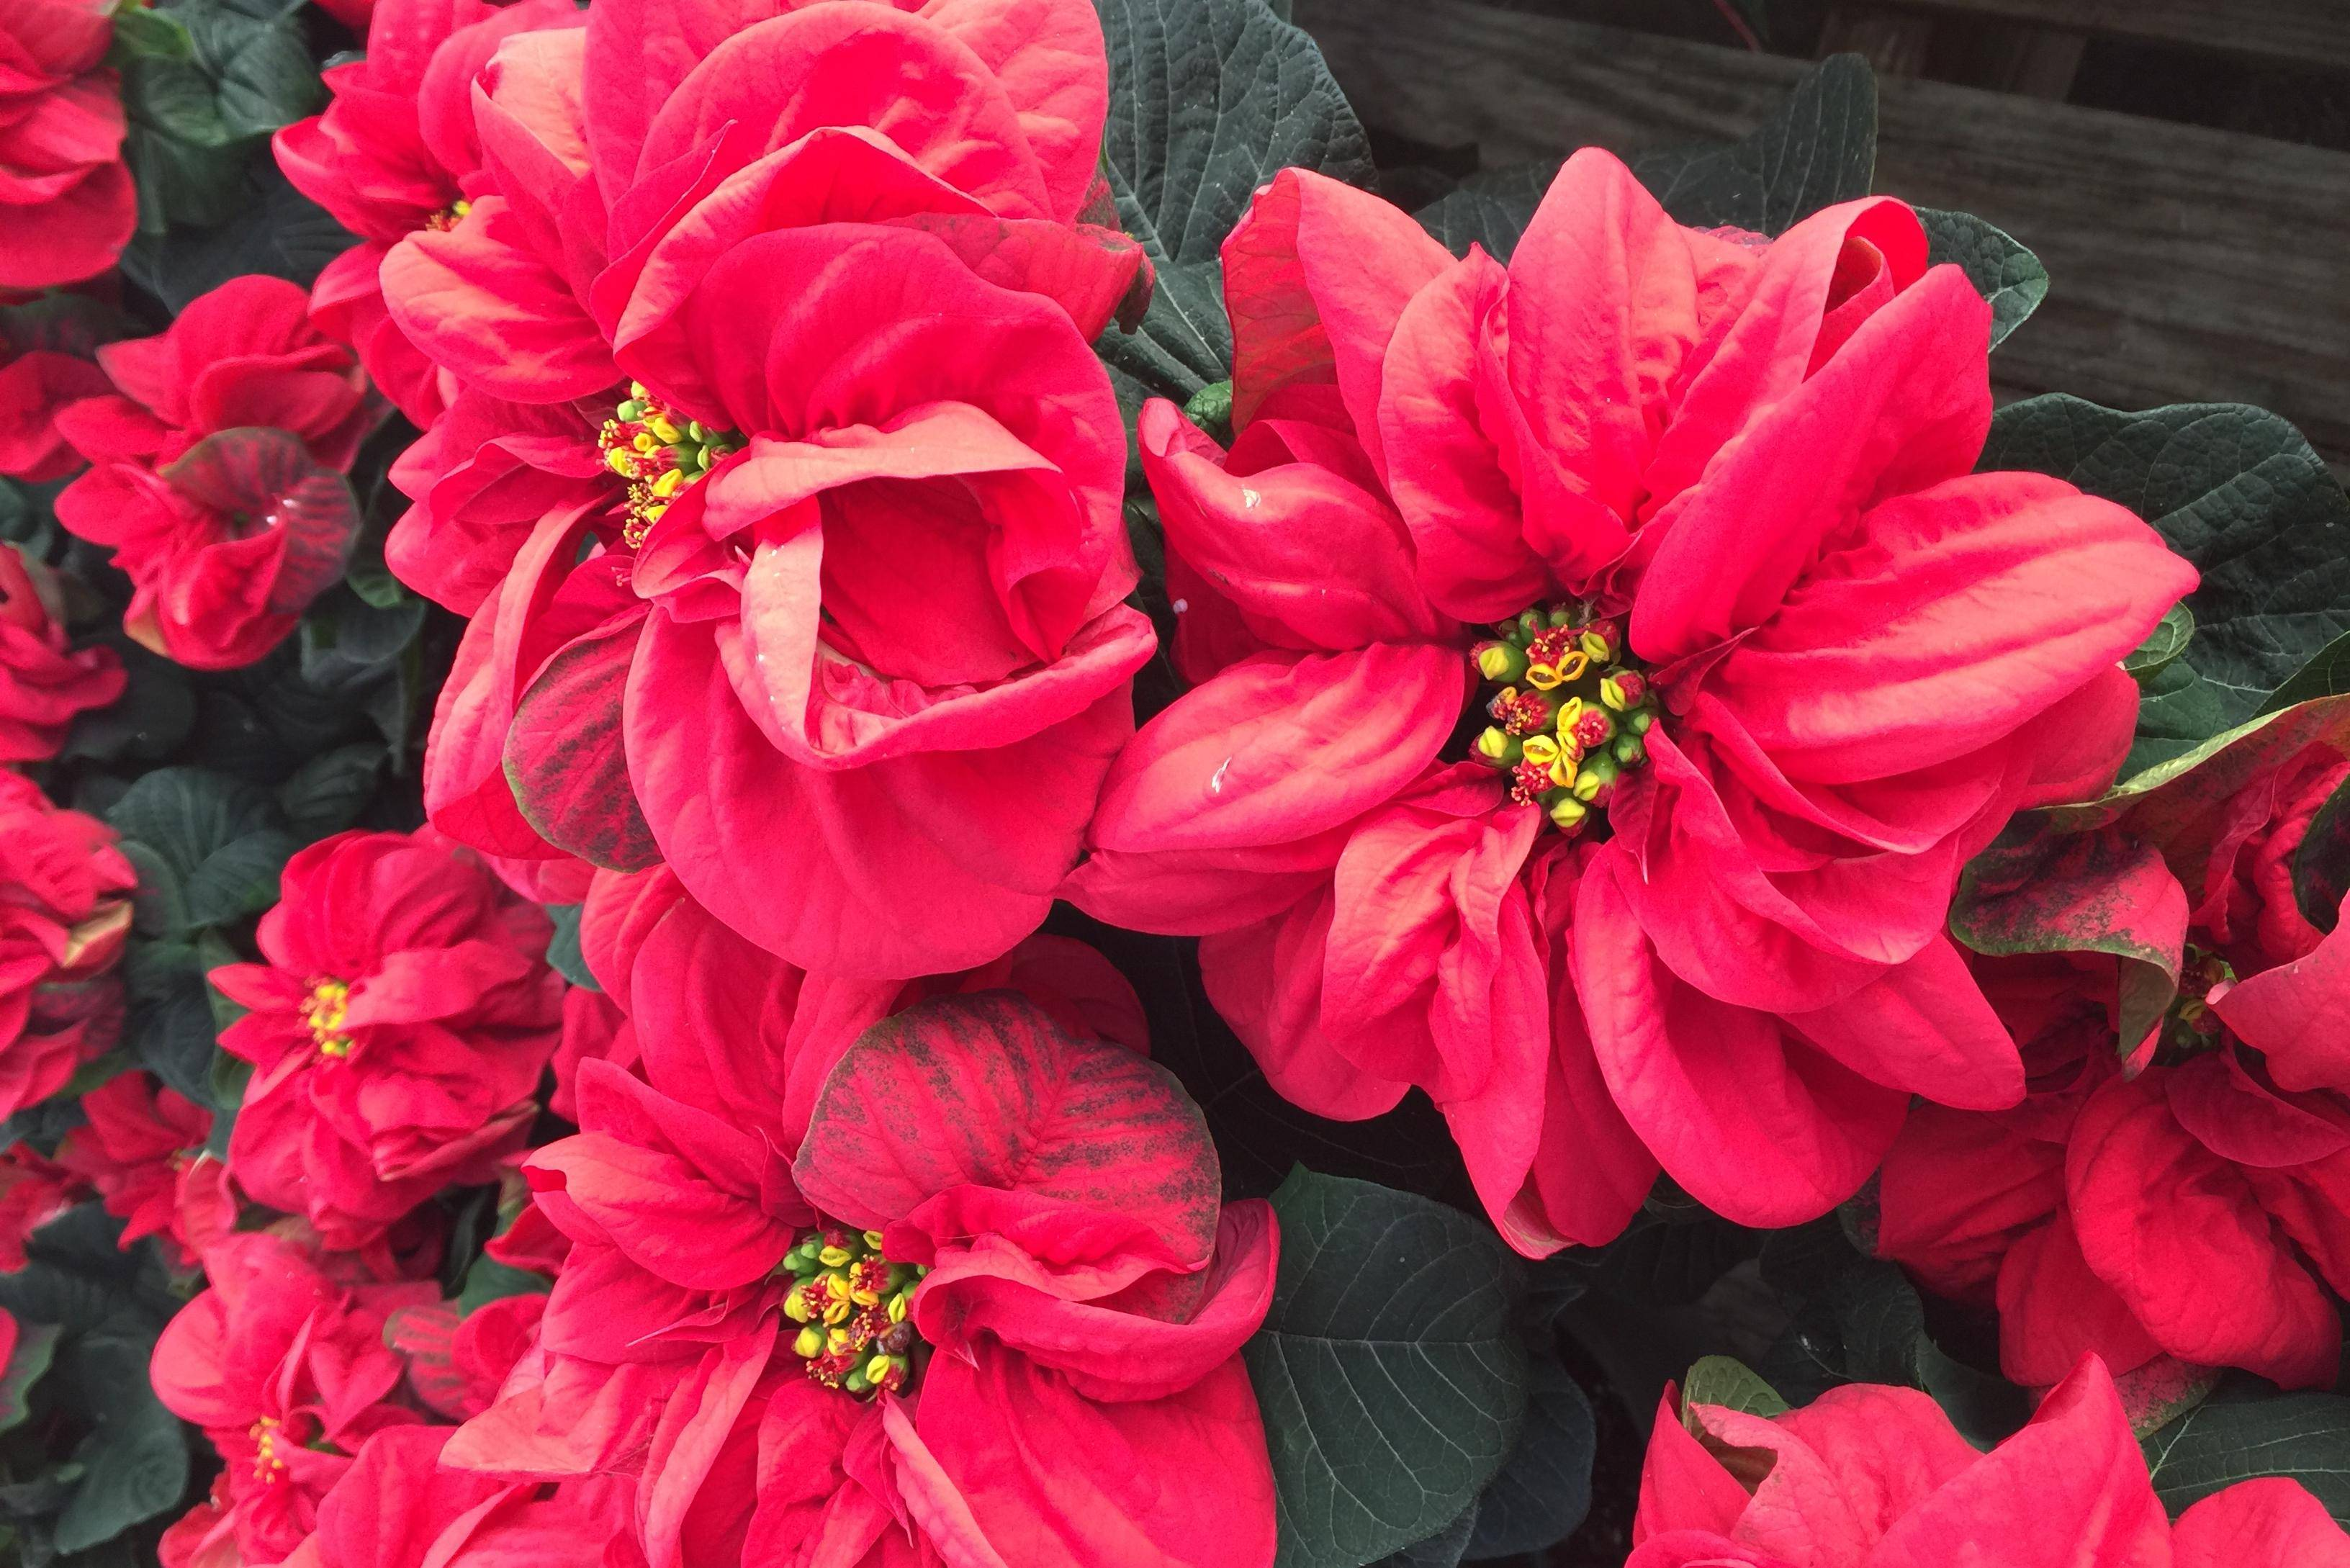 Not Your Grandma S Poinsettias New Varieties Of Traditional Plant Add Plethora Color Petal Options With Photos Noogatoday